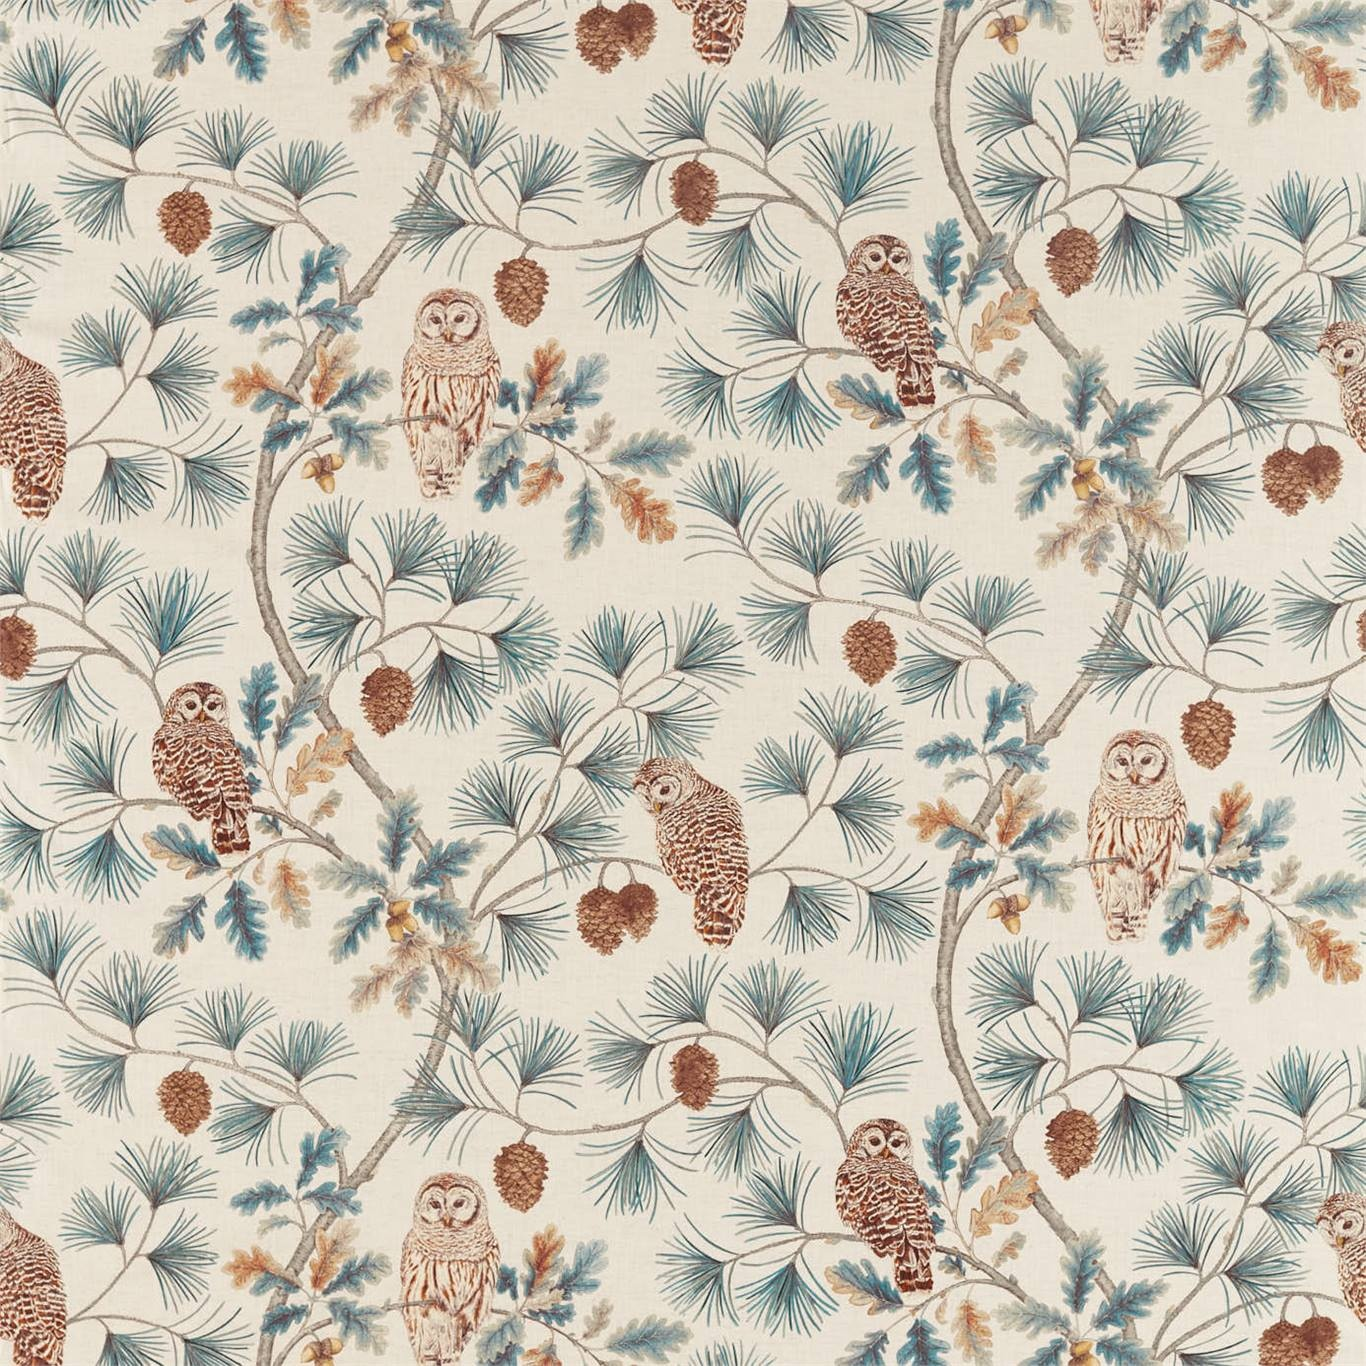 Image of Sanderson Owlswick Teal Curtain Fabric 226524